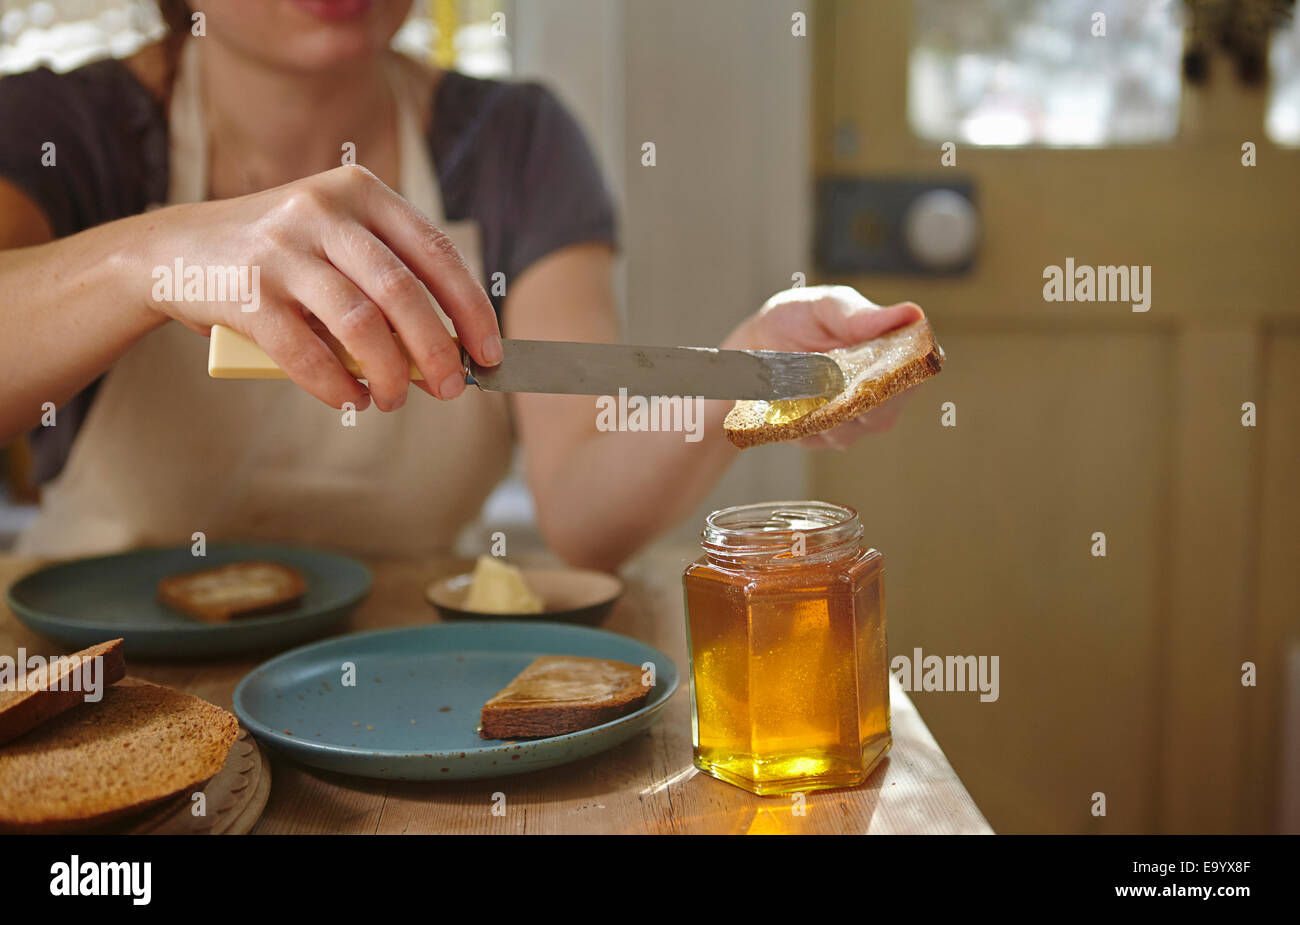 Woman tasting freshly extracted honey on bread - Stock Image